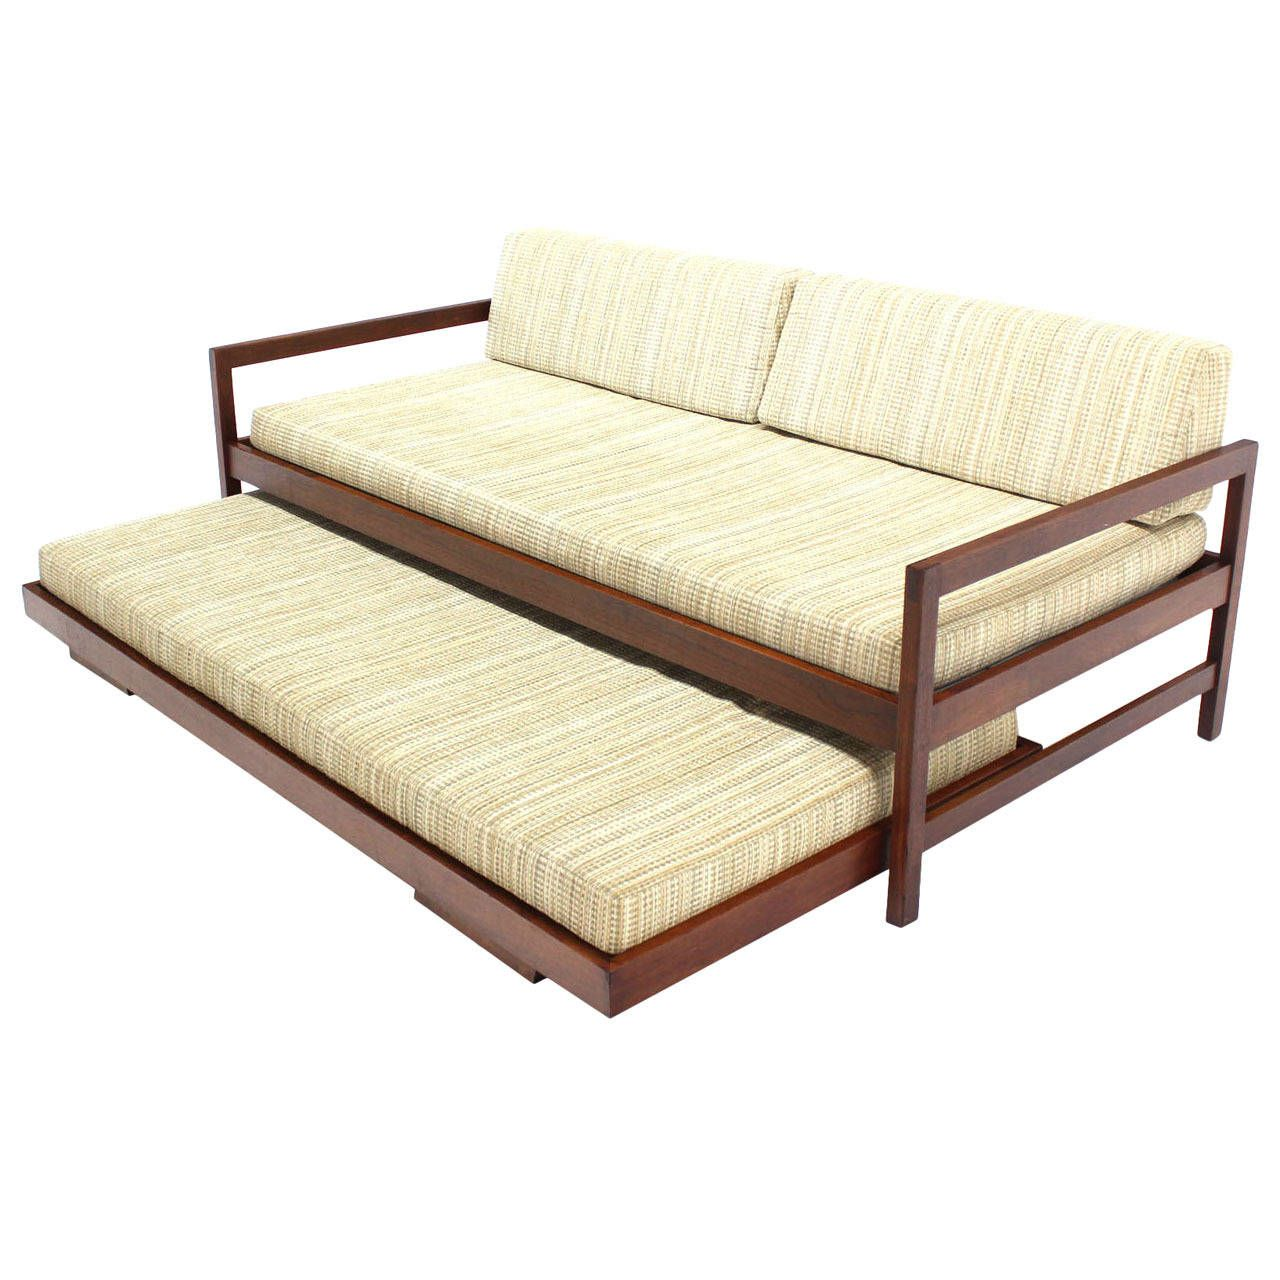 Best Mid Century Twin Size Daybed Frame With Trundle Design 400 x 300